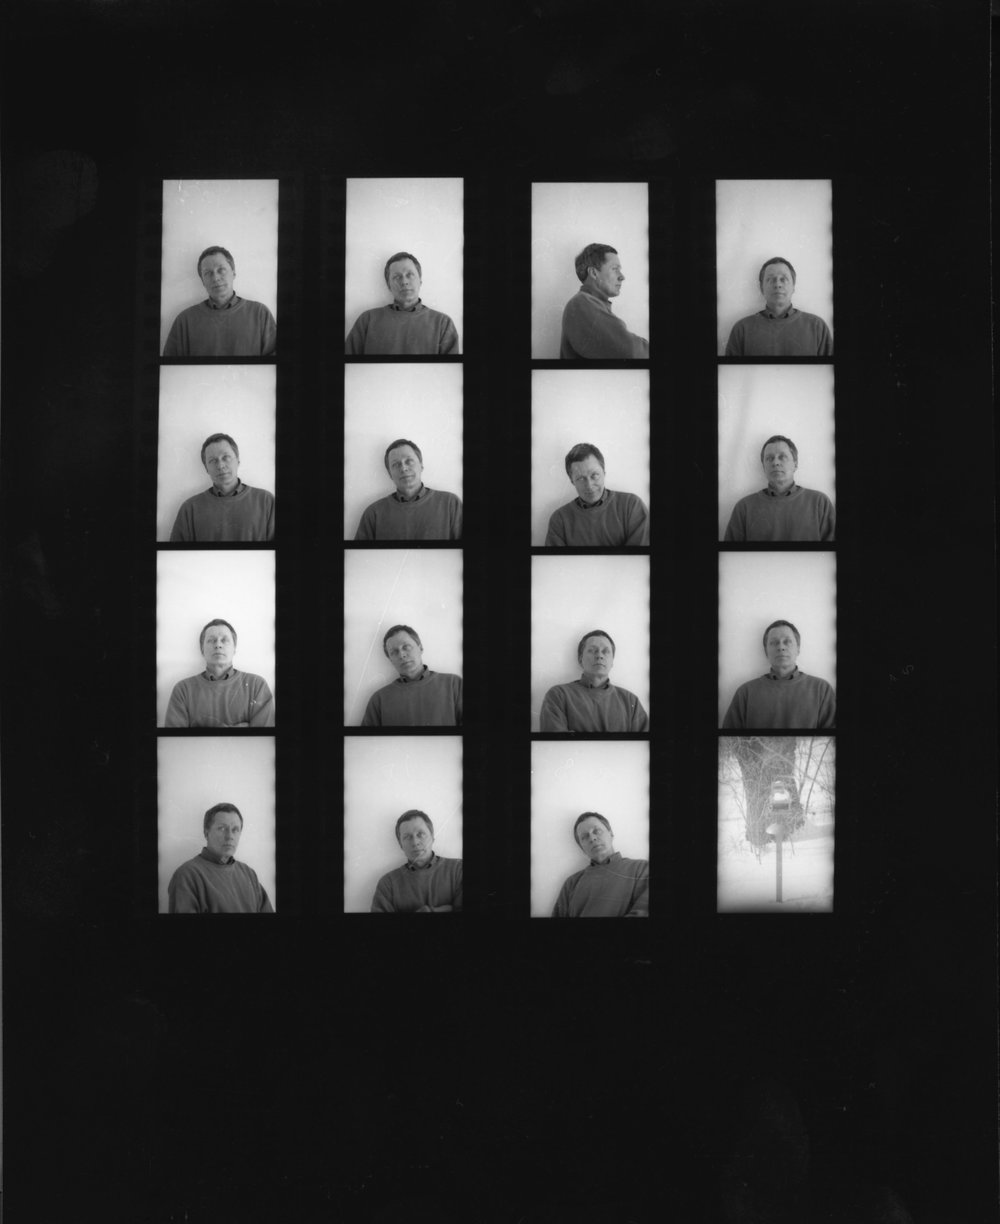 Found film roll of self portraits, taken by Oscar, date unknown